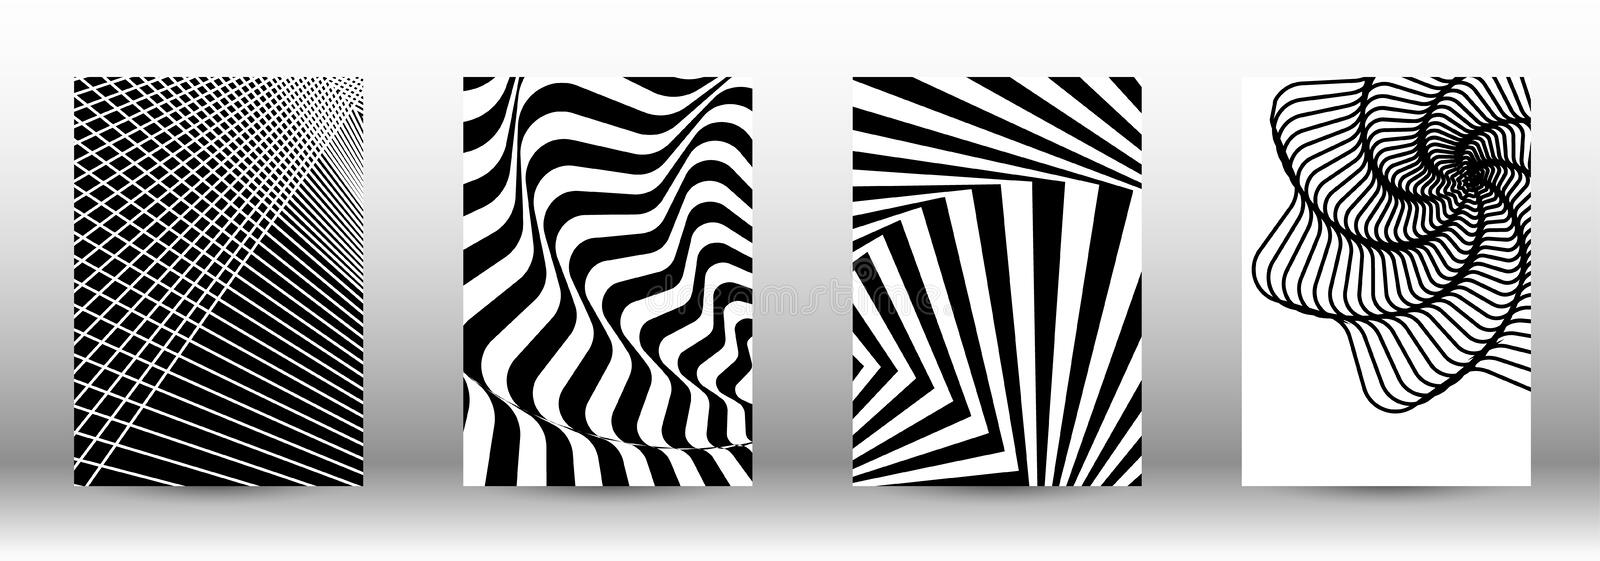 Set of abstract psychedelic backgrounds. Optical contrast. Set of abstract patterns with distorted lines. Black and white striped psychedelic background royalty free illustration